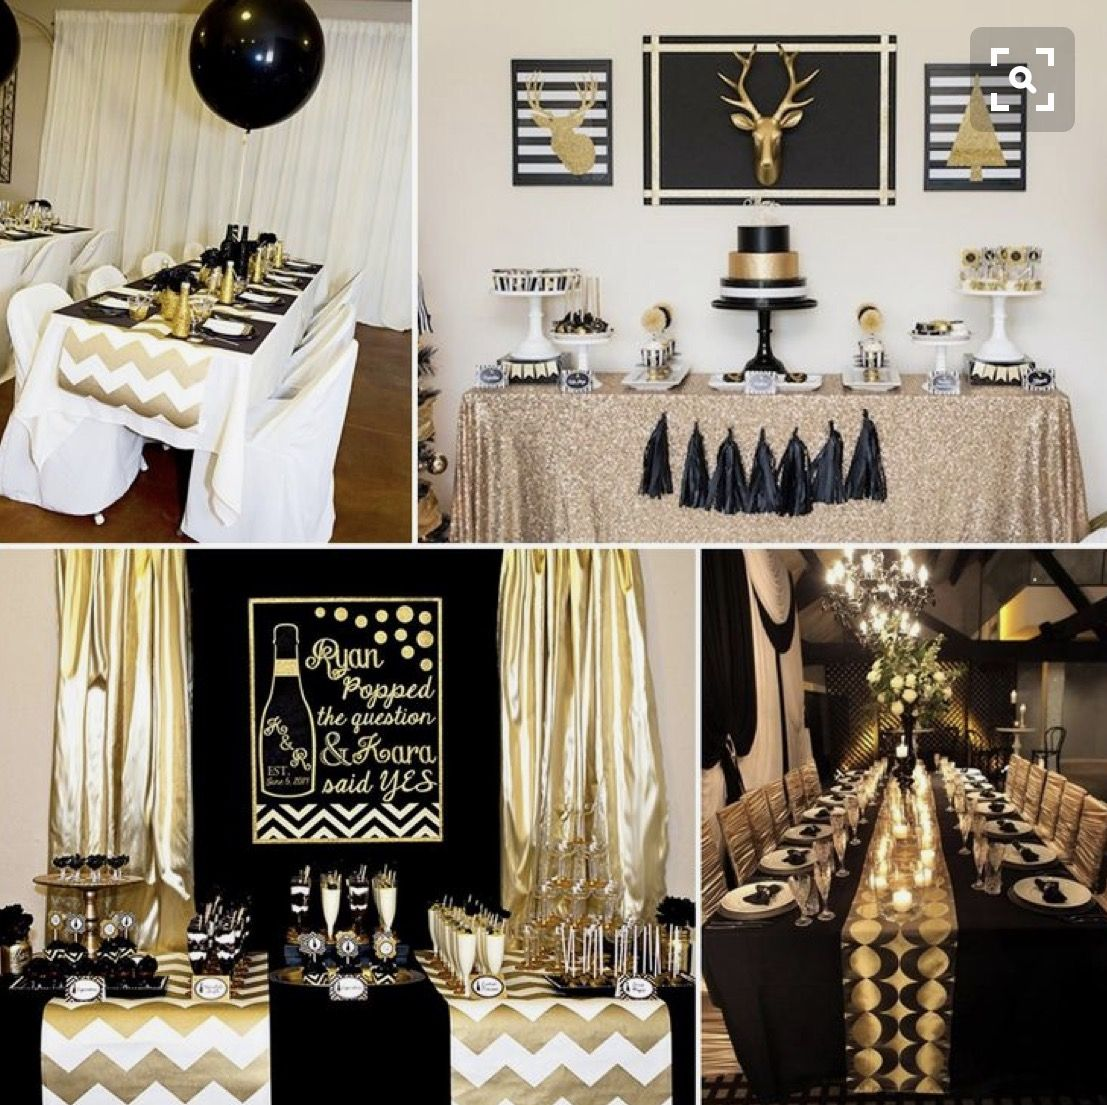 60th Birthday Ideas For Mom Party 40th Themes Decorations